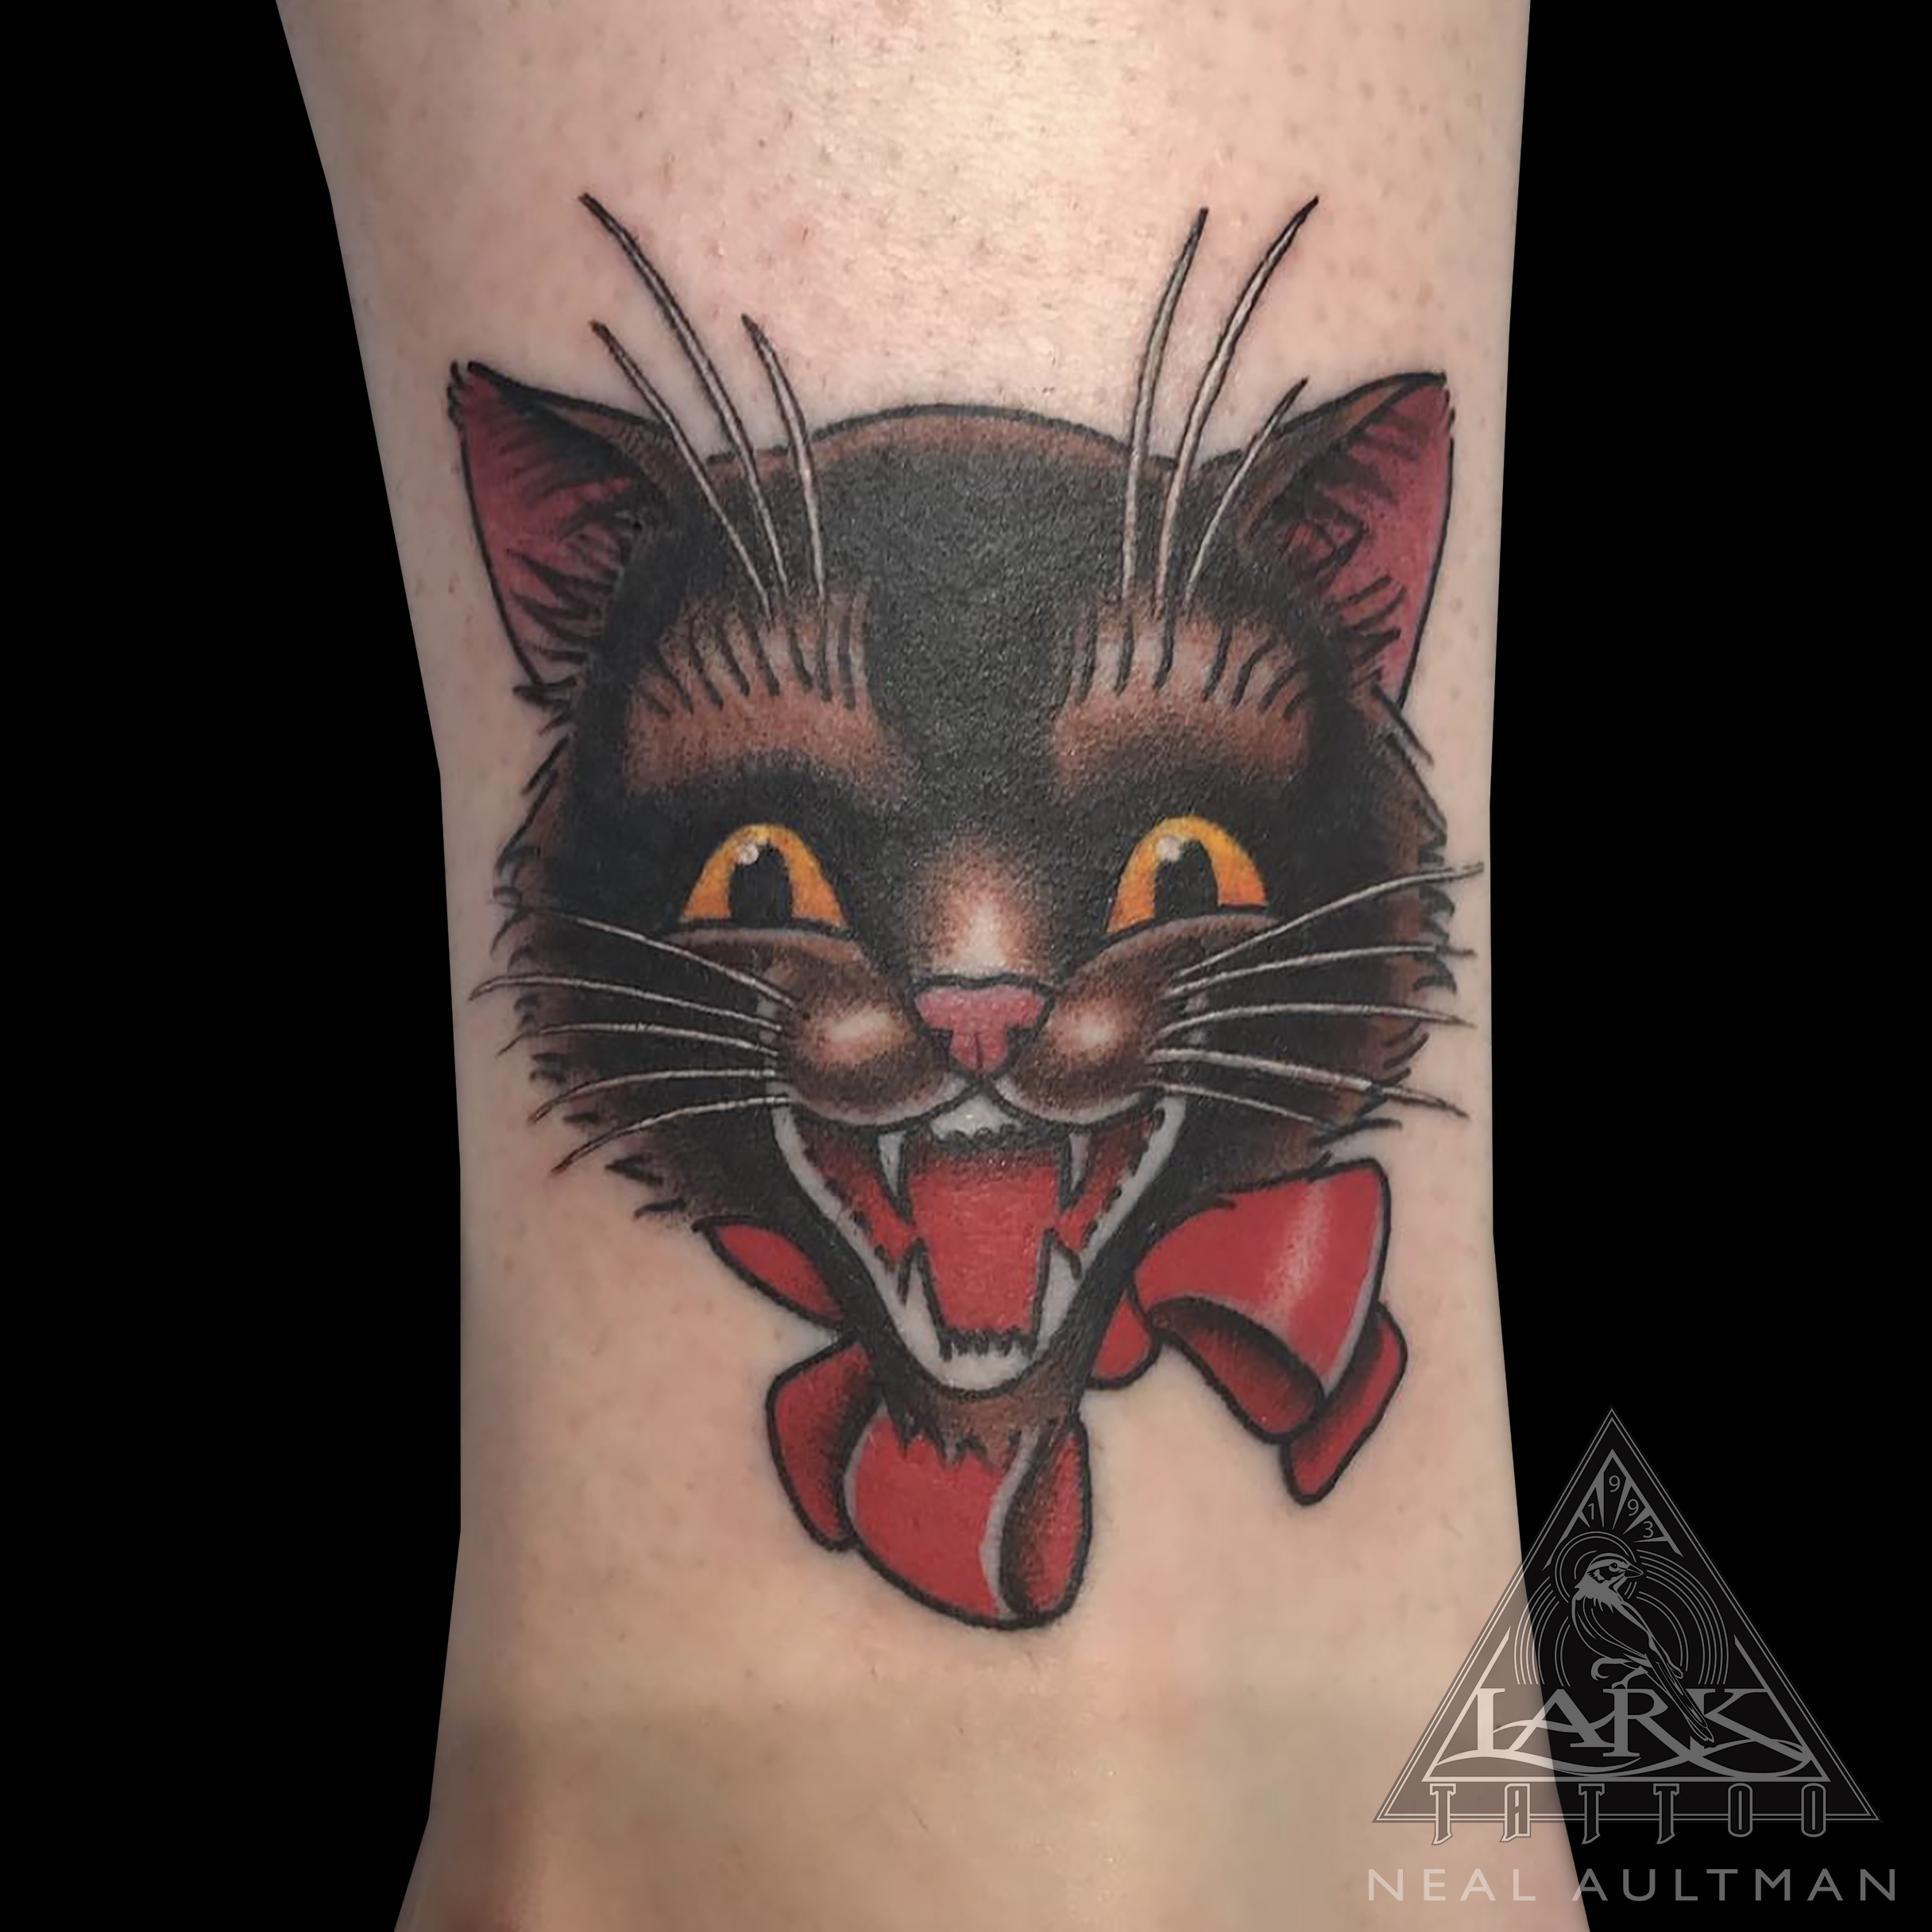 cat, cattattoo, blackcat, blackcattattoo, kitty, kittytattoo, colortattoo, halloween, halloweentattoo, halloweencat, halloweencattattoo, tattoo, tattoos, tat, tats, tatts, tatted, tattedup, tattoist, tattooed, inked, inkedup, ink, tattoooftheday, amazingink, bodyart, tattooig, tattoosofinstagram, instatats , larktattoo, larktattoos, larktattoowestbury, westbury, longisland, NY, NewYork, usa, art